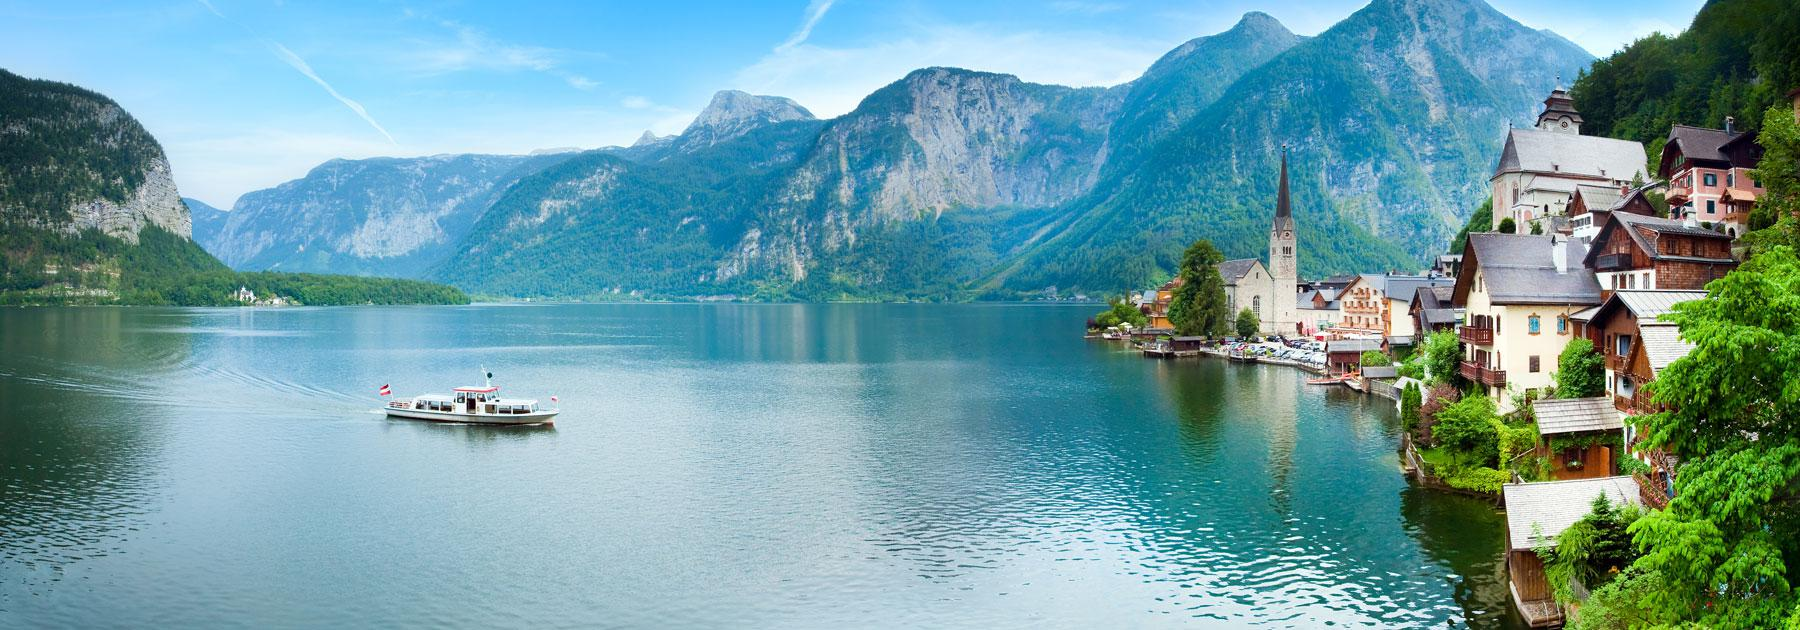 Austria Vacations With Airfare Trip To Austria From Go Today